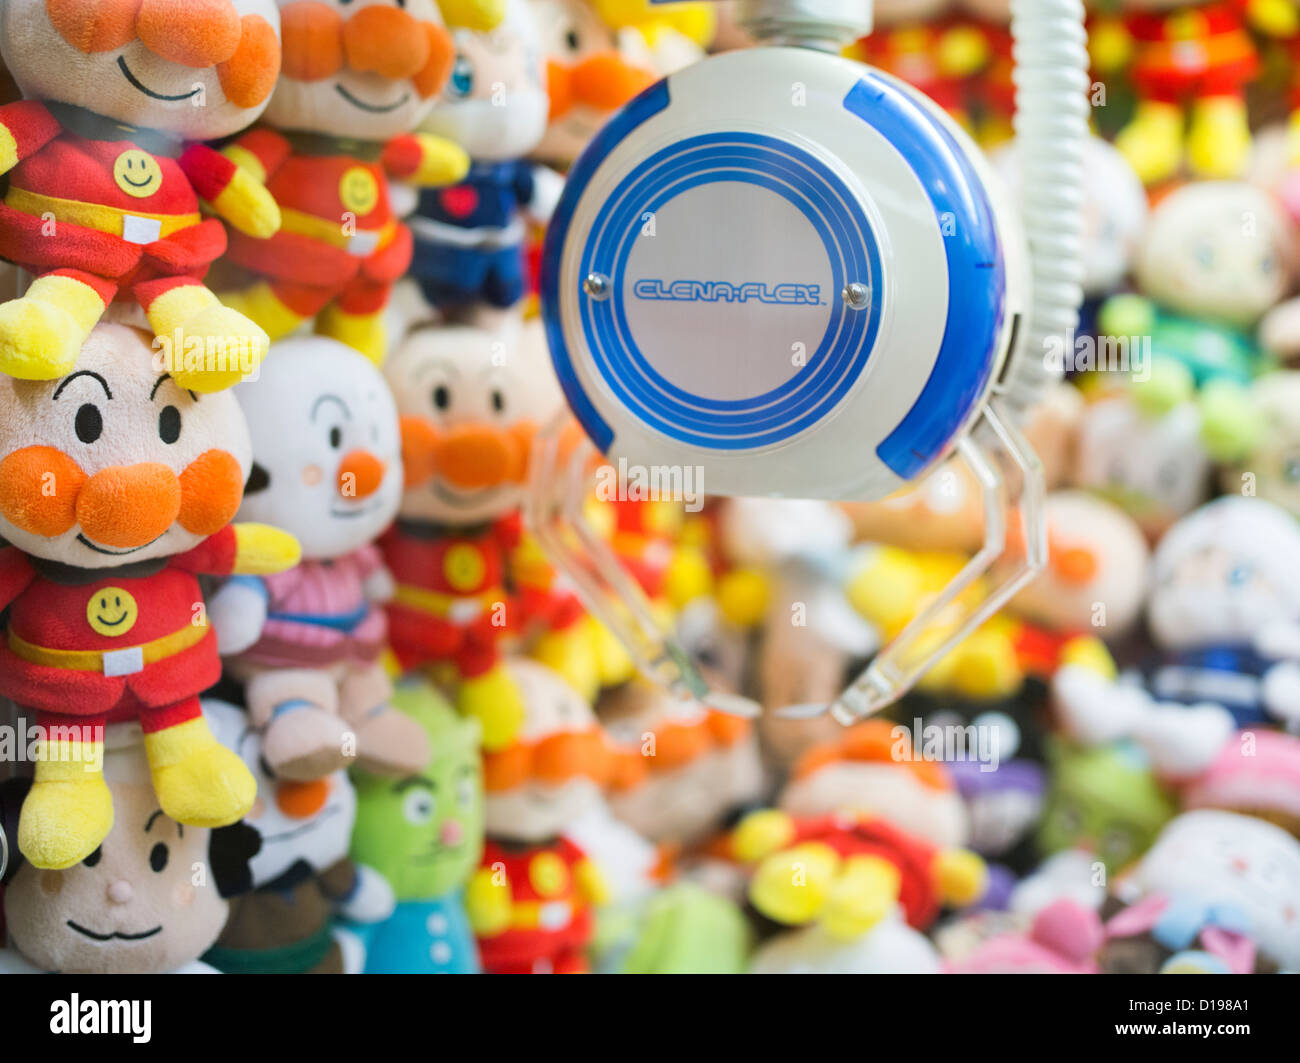 UFO catcher machine in Shinjuku Japan with stuffed toys of popular anime characters inside. - Stock Image